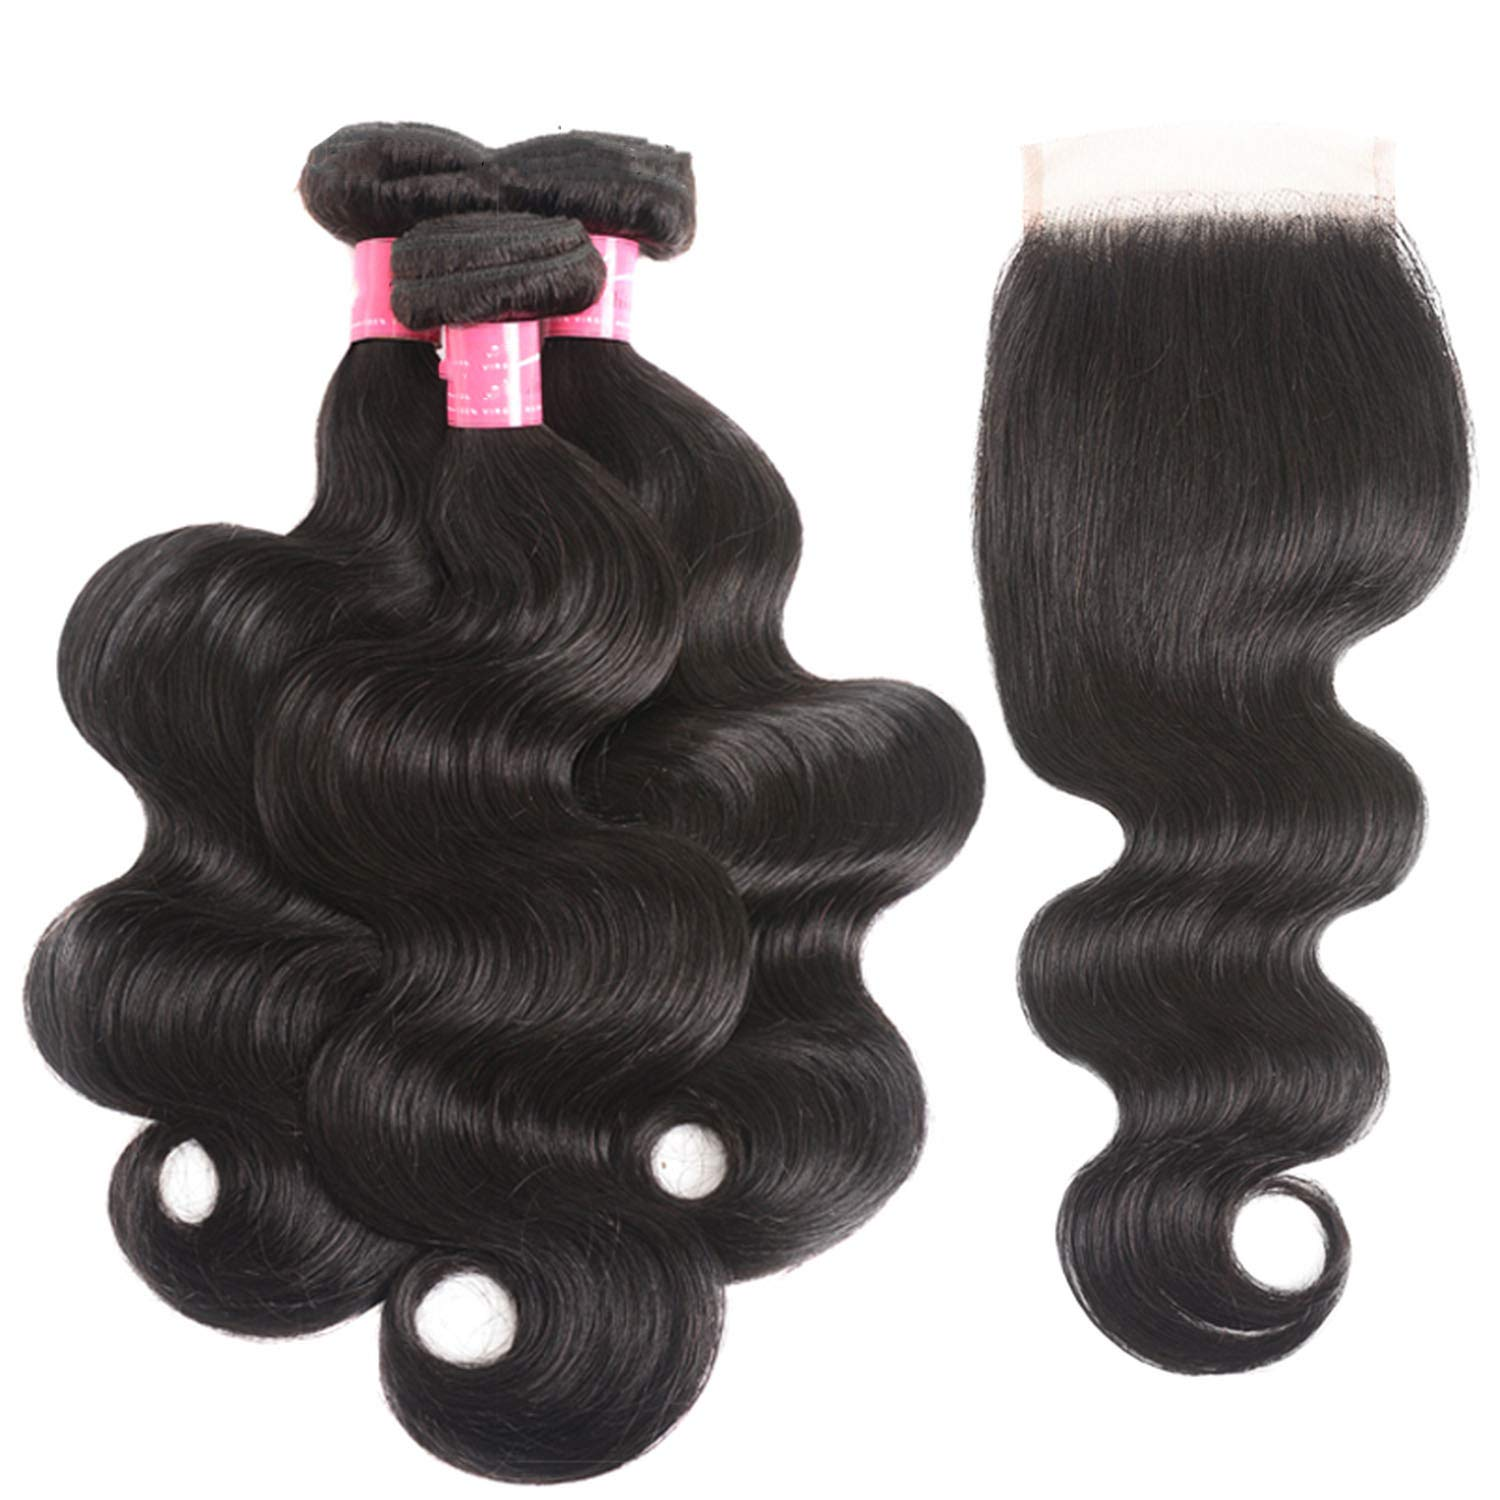 Peony red Peruvian Body Wave 3 Bundles With Closure Non Remy Hair Weft Human Hair,12 12 12 & Closure10,Natural Color,Three Part,United States 71pbX65SJ1L._SL1500_